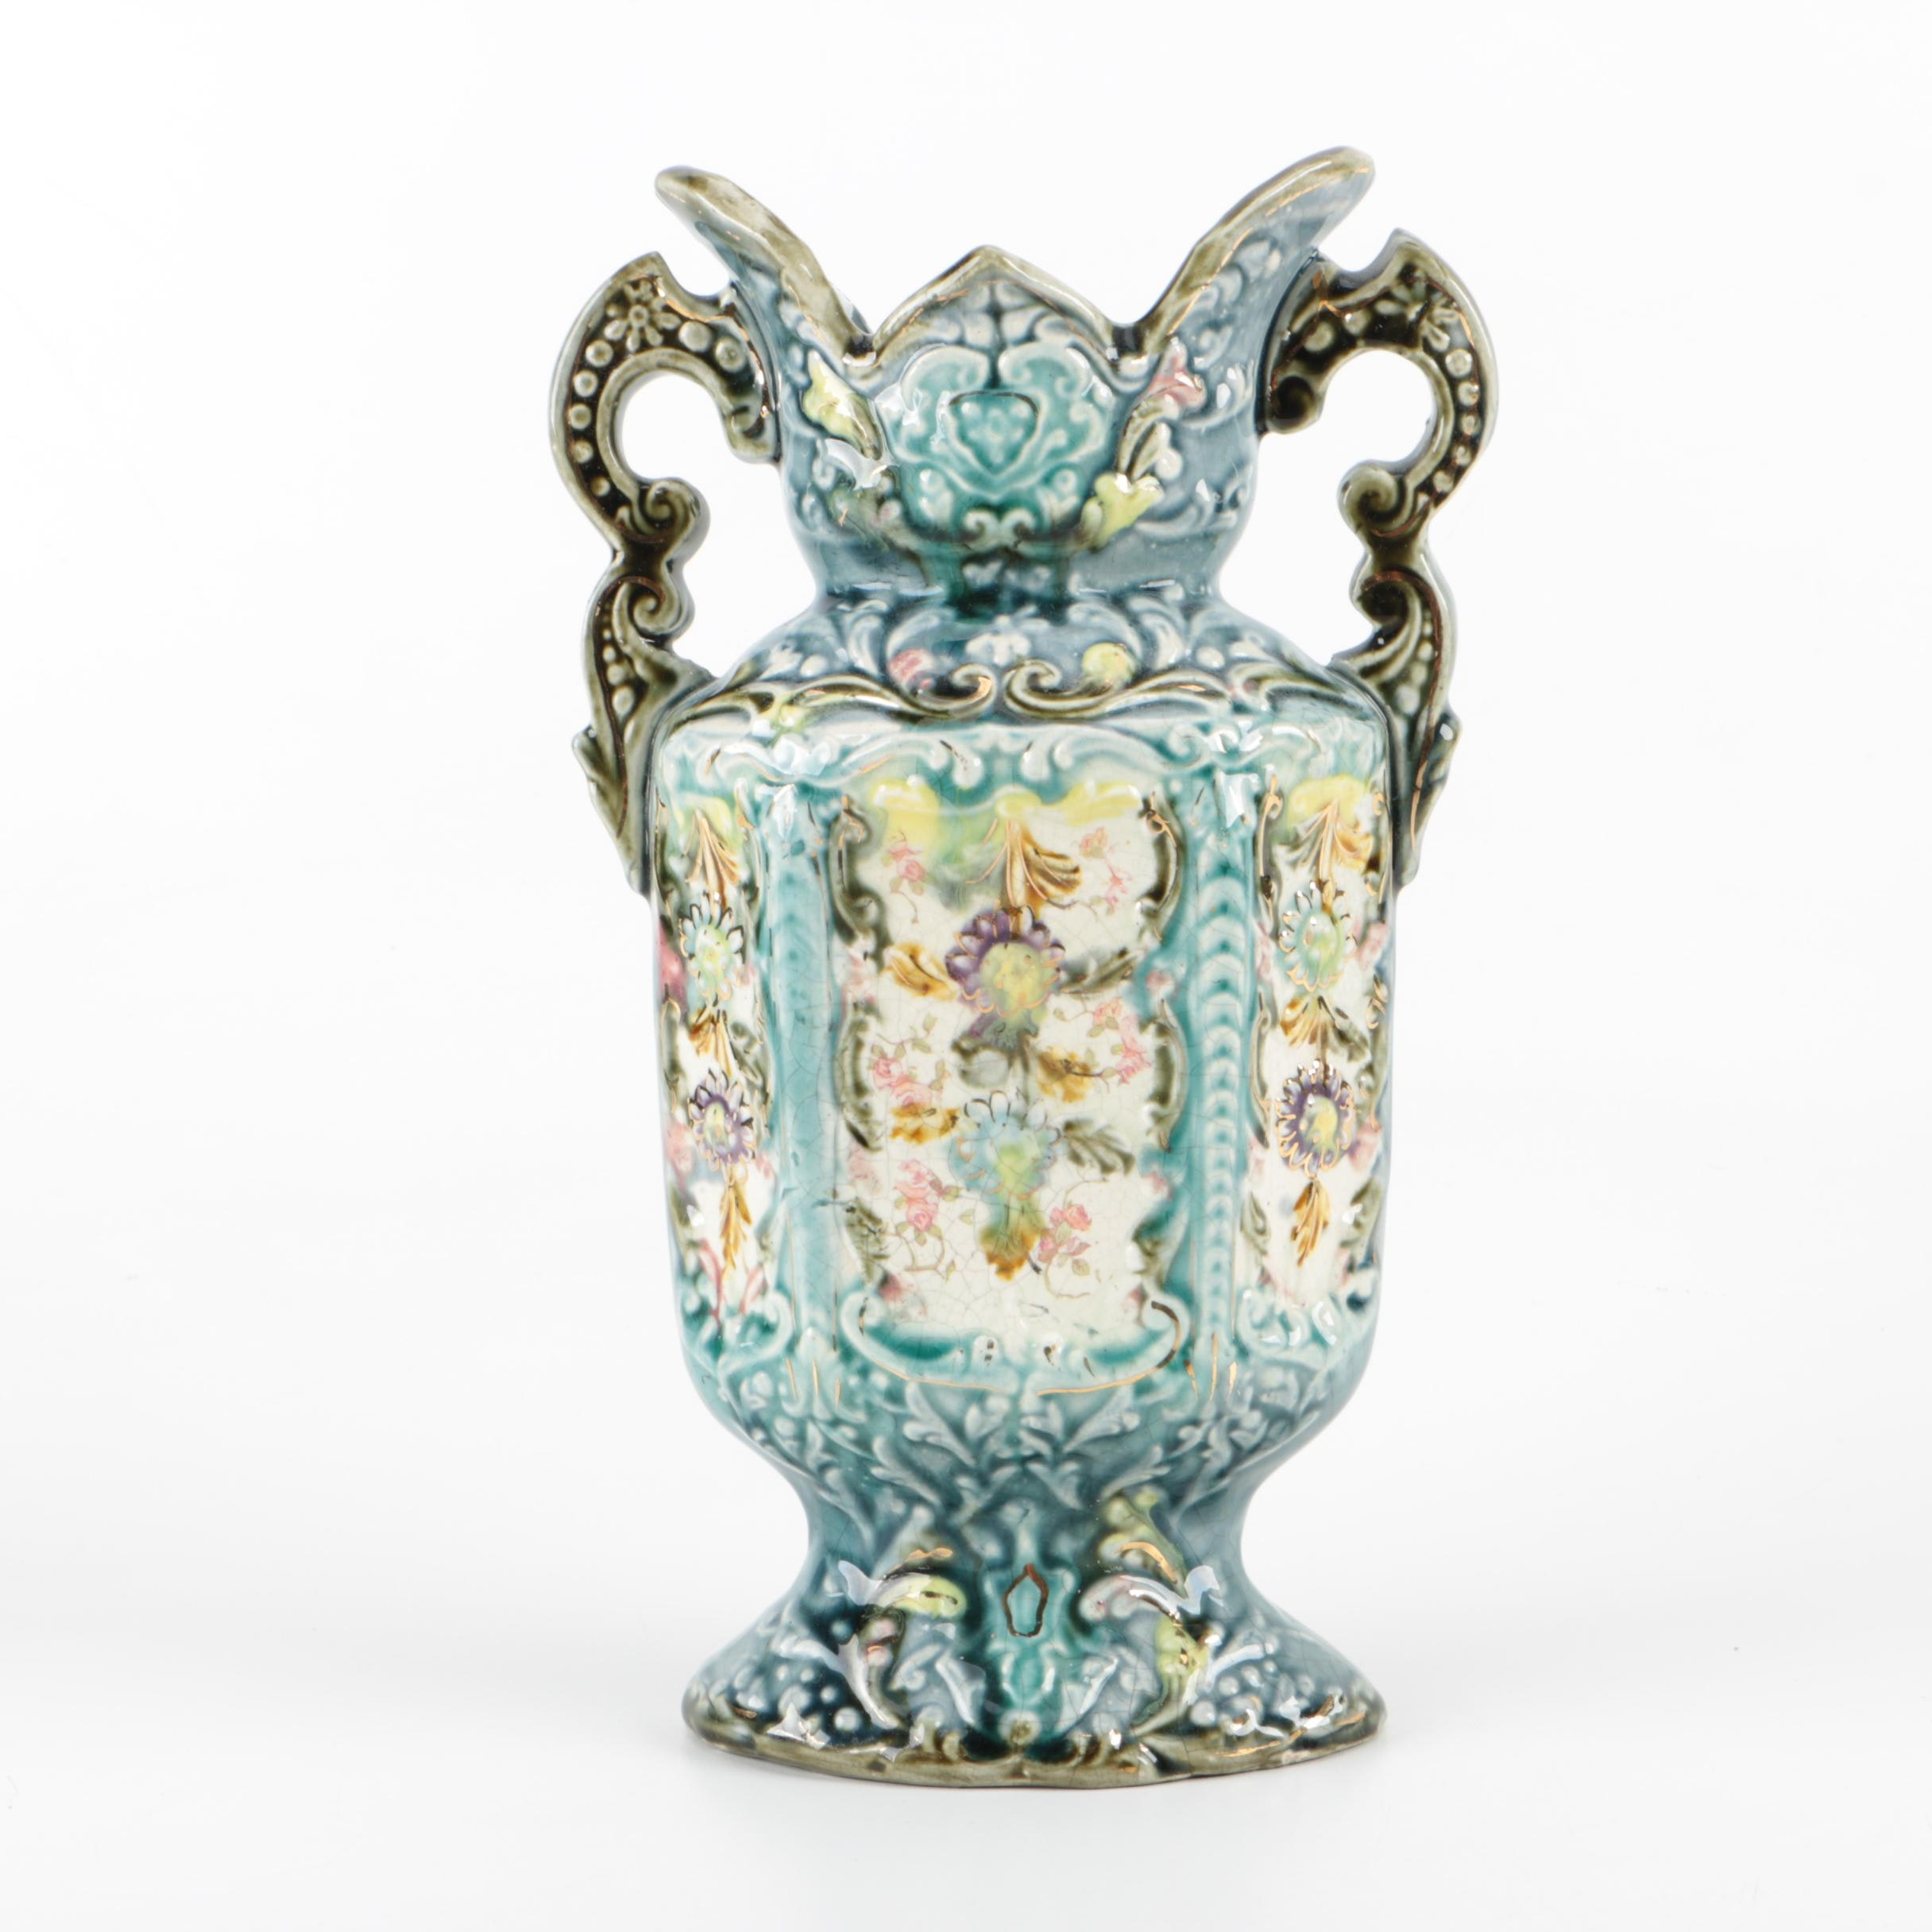 Vintage Hand-Painted and Embossed Ceramic Amphora